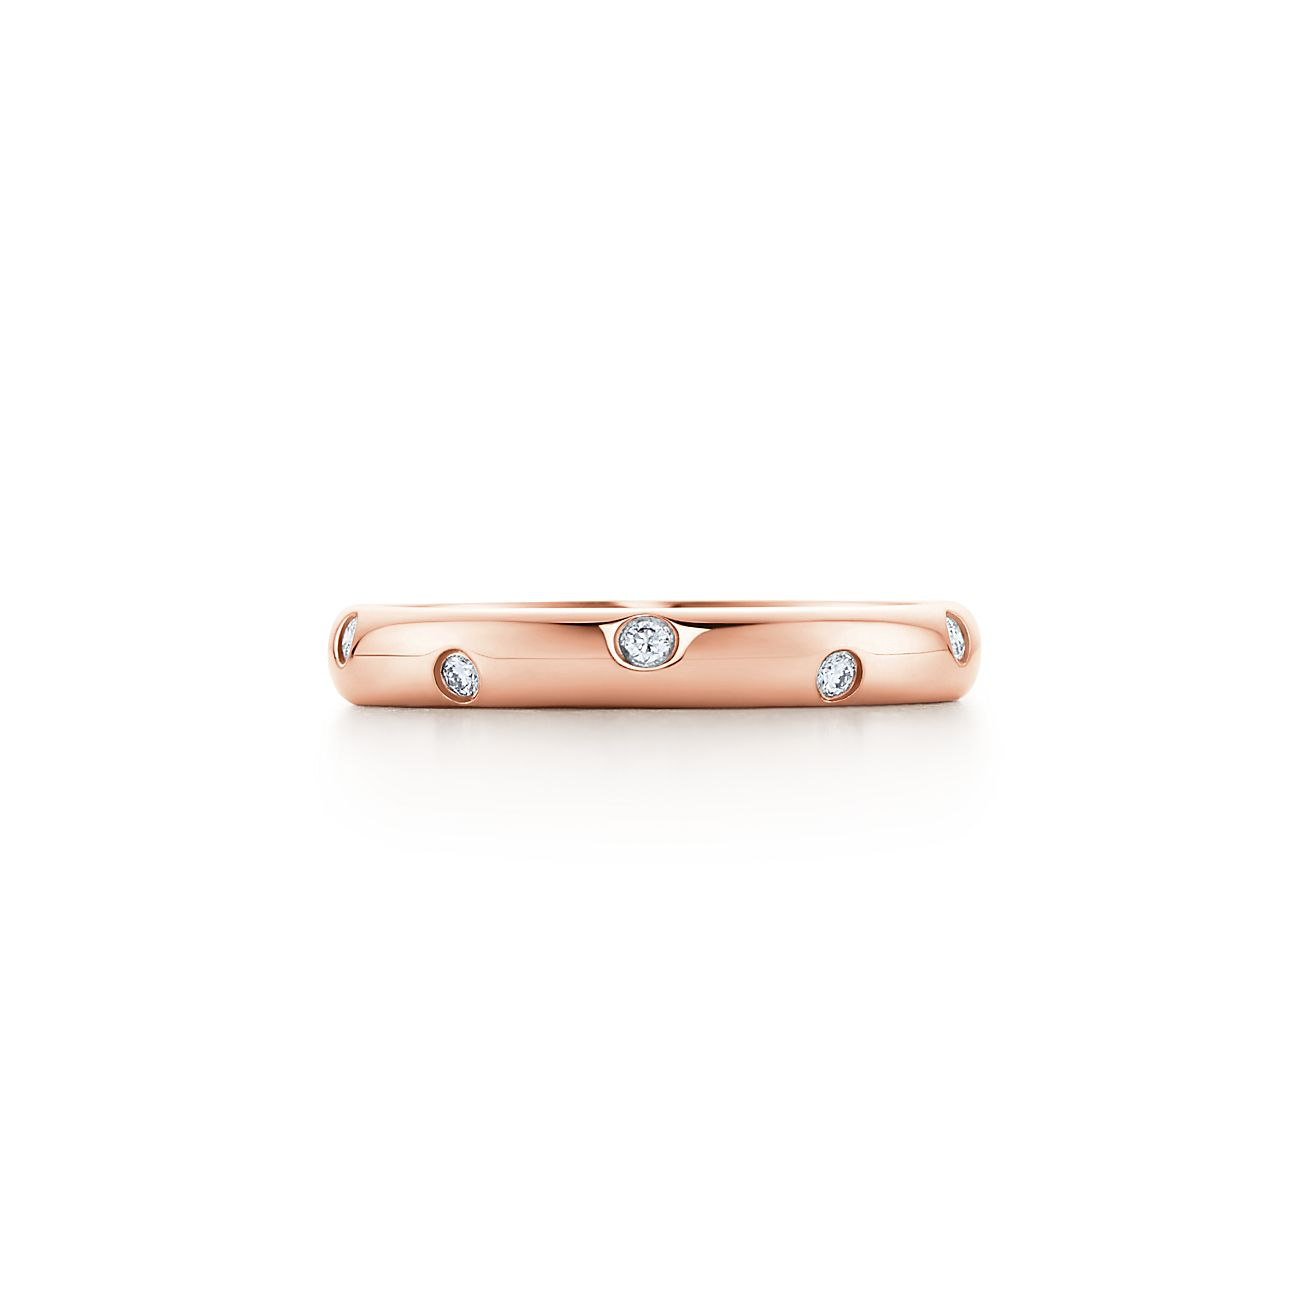 Elsa Peretti band ring with a diamond in 18k rose gold, 3 mm wide - Size 8 1/2 Tiffany & Co.